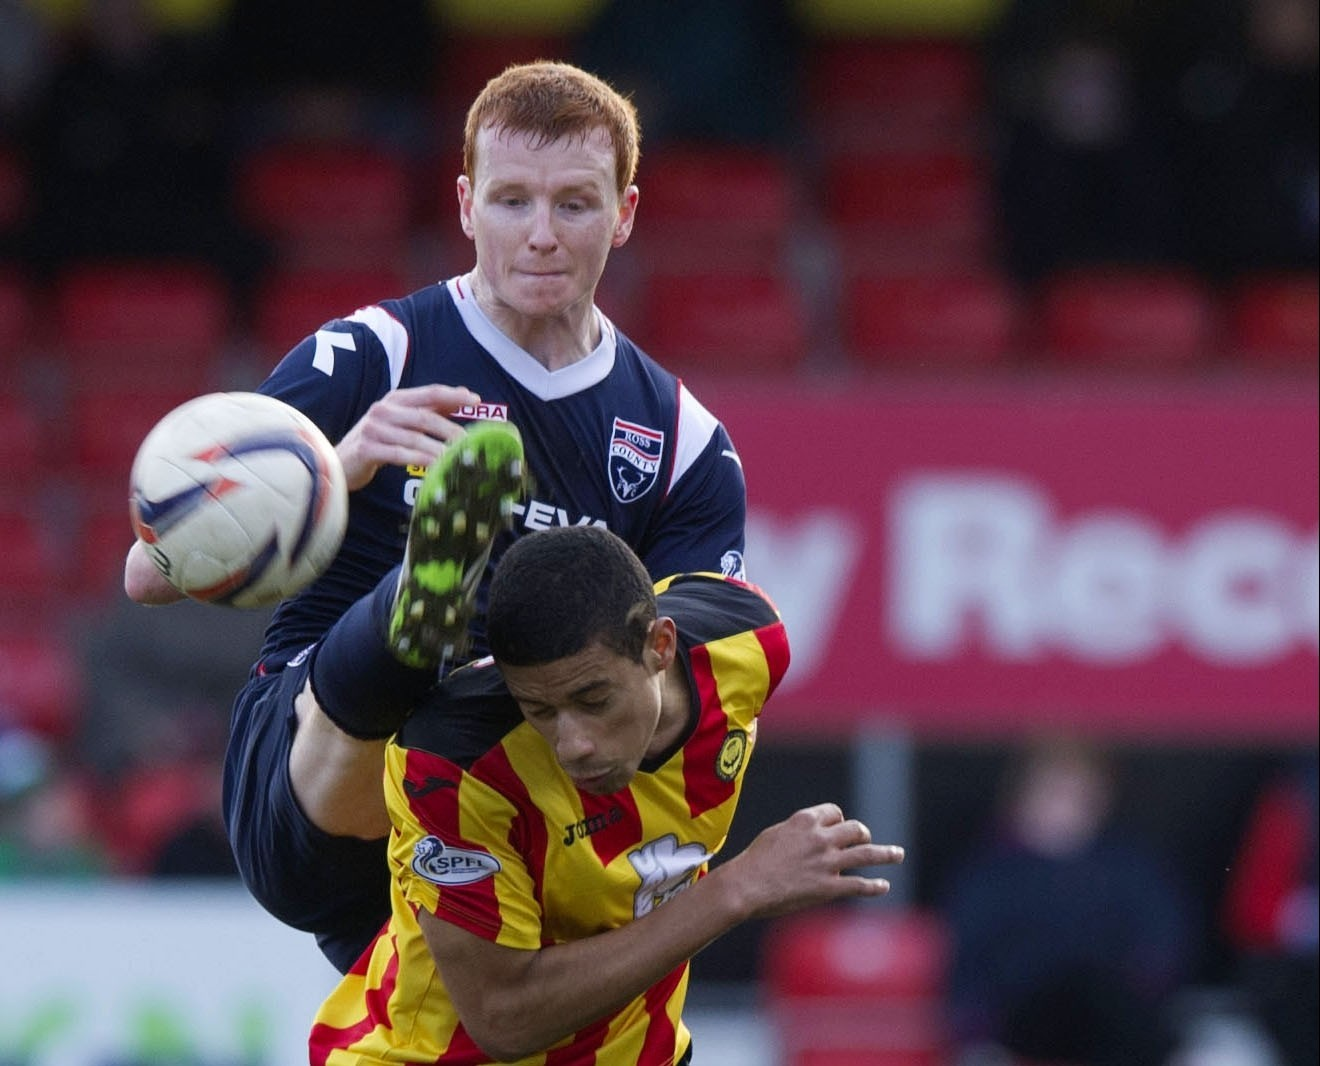 Ross County defender Scott Boyd will lock horns with Partick Thistle striker Lyle Taylor again tomorrow